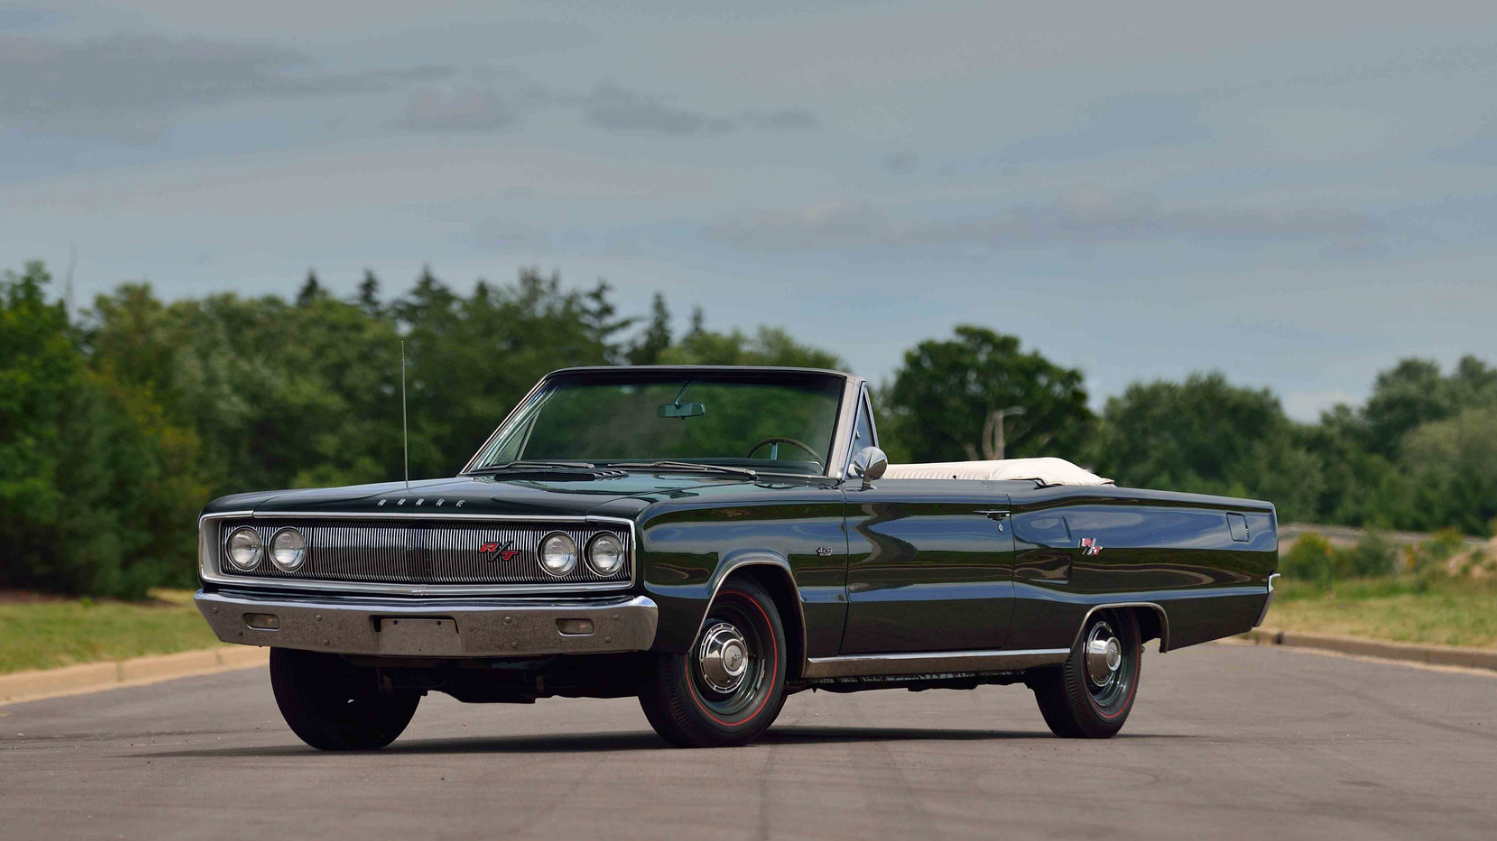 10 of the rarest and most powerful classic muscle car convertibles